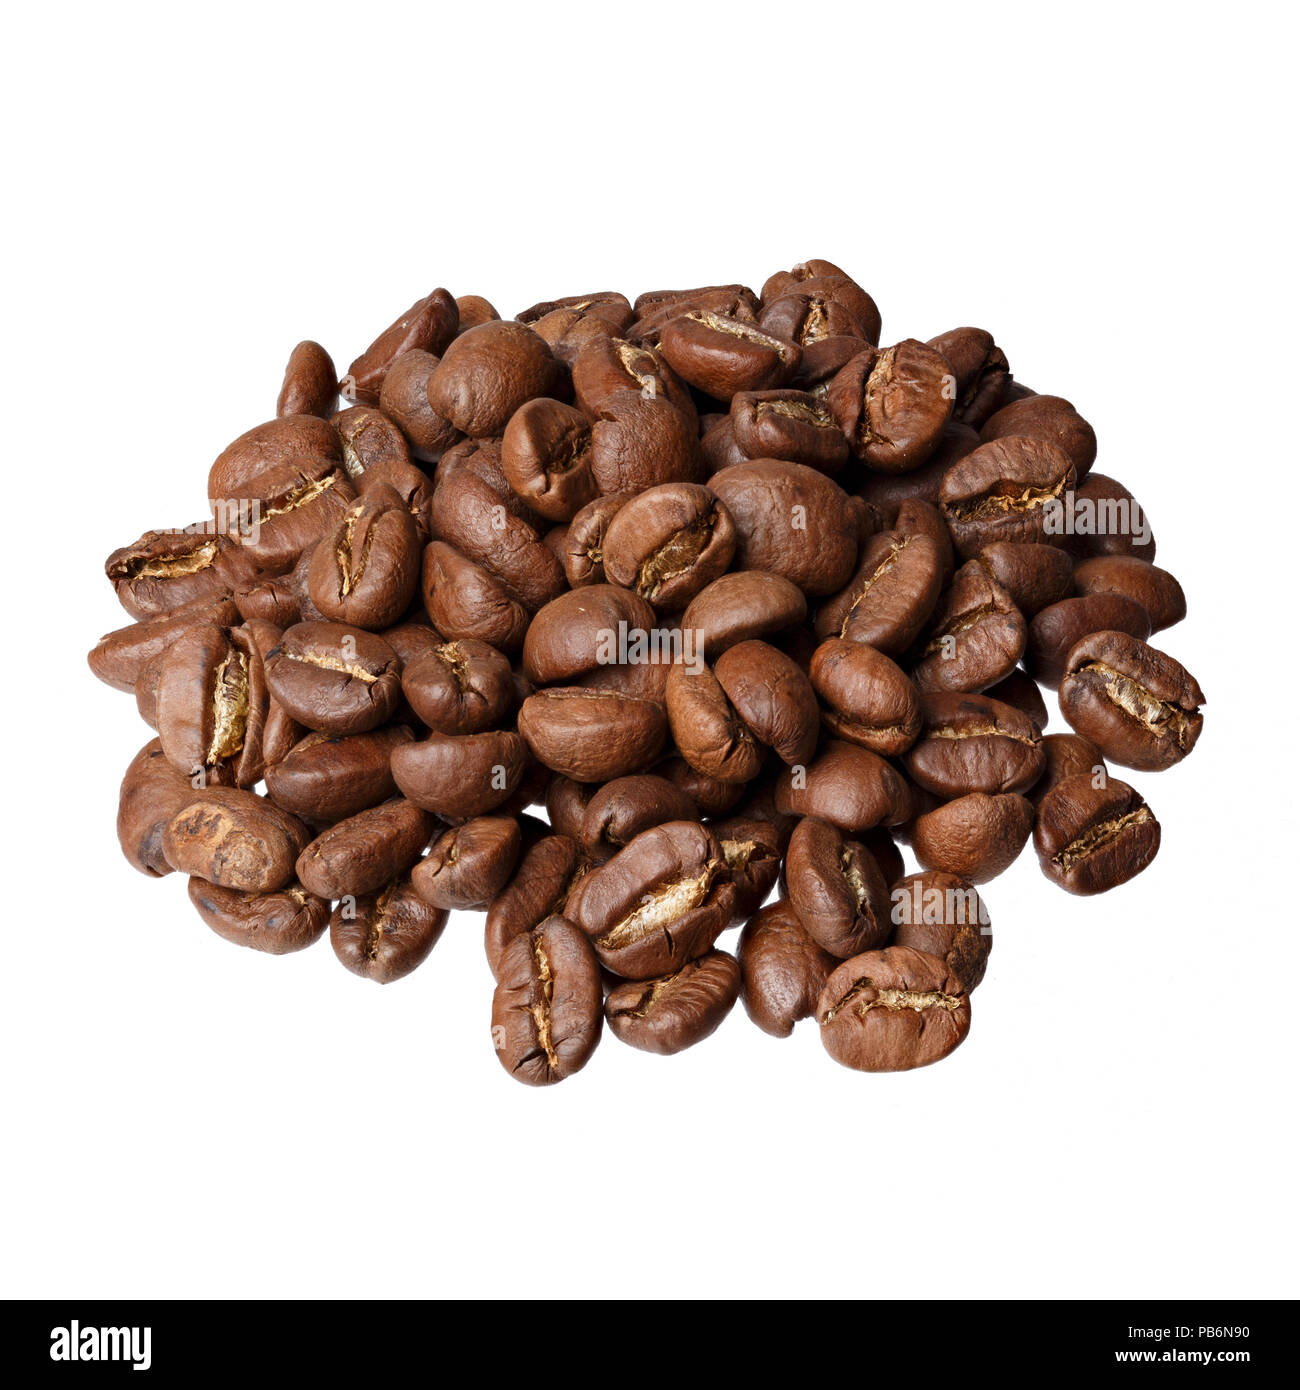 Nicaragua Coffee beans gourmet coffee on white background. - Stock Image